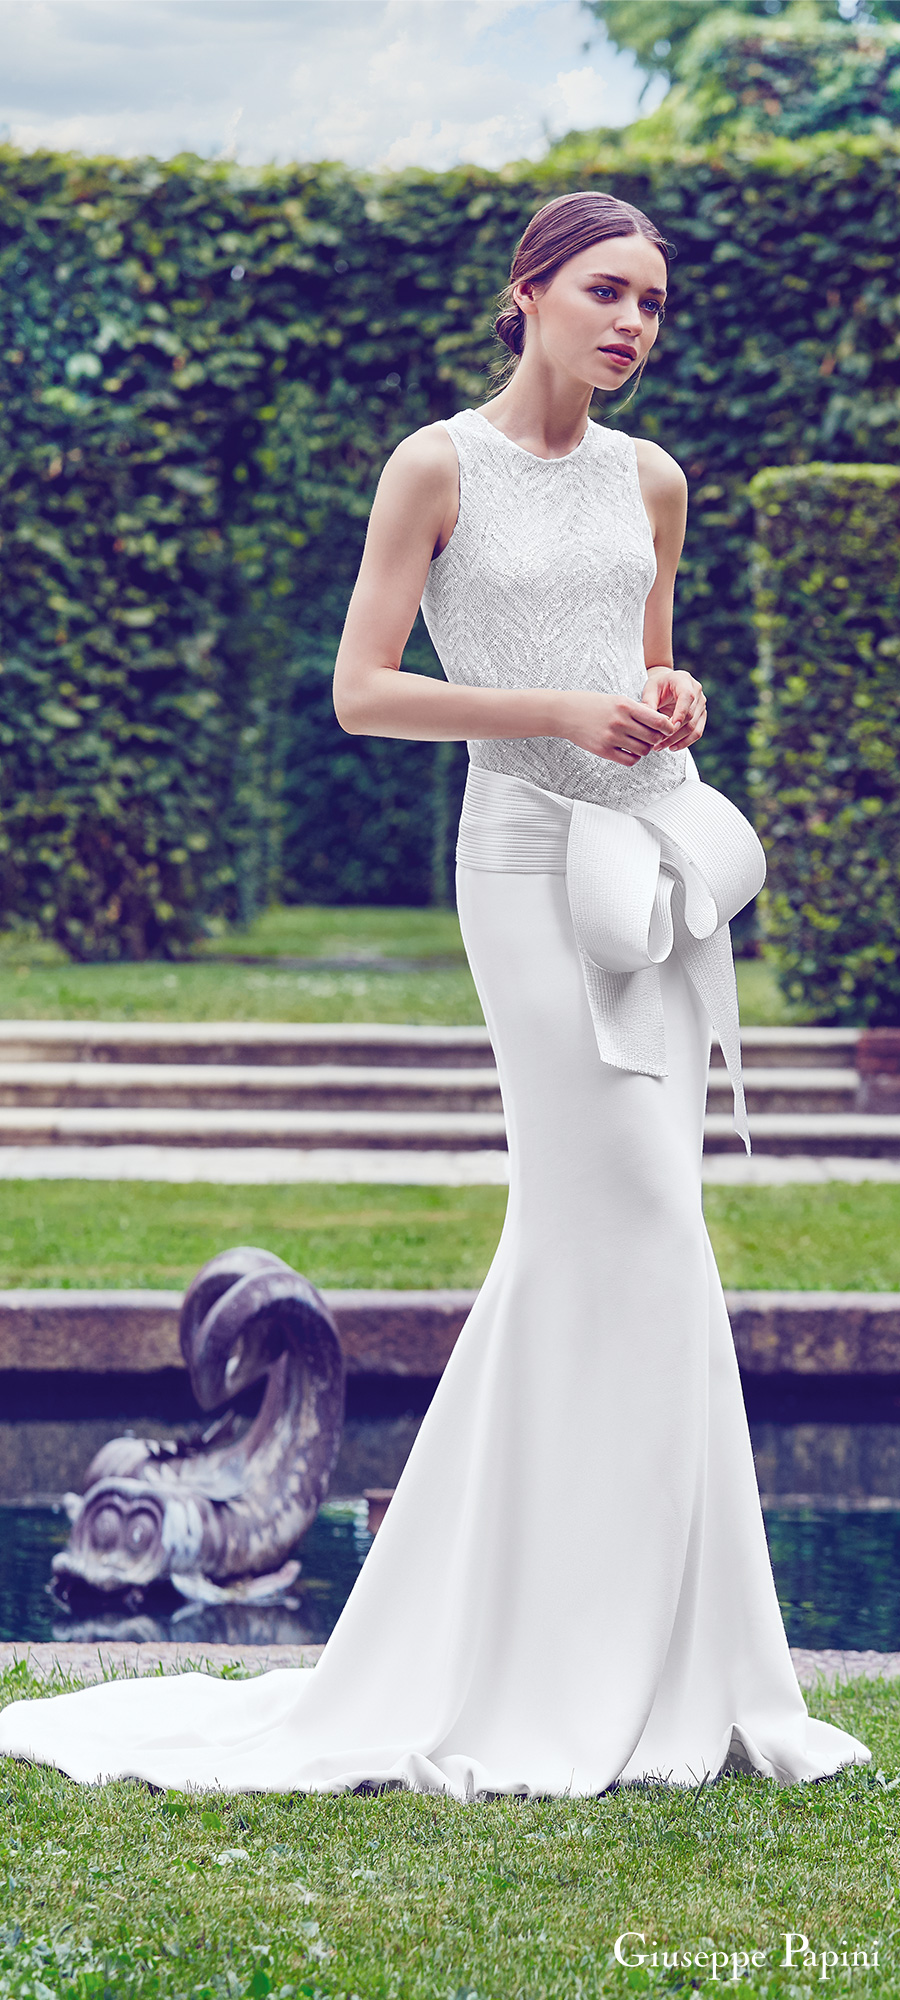 giuseppe papini 2017 (verona) sleeveless jewel neck embellished bodice sheath wedding dress mv modern sash